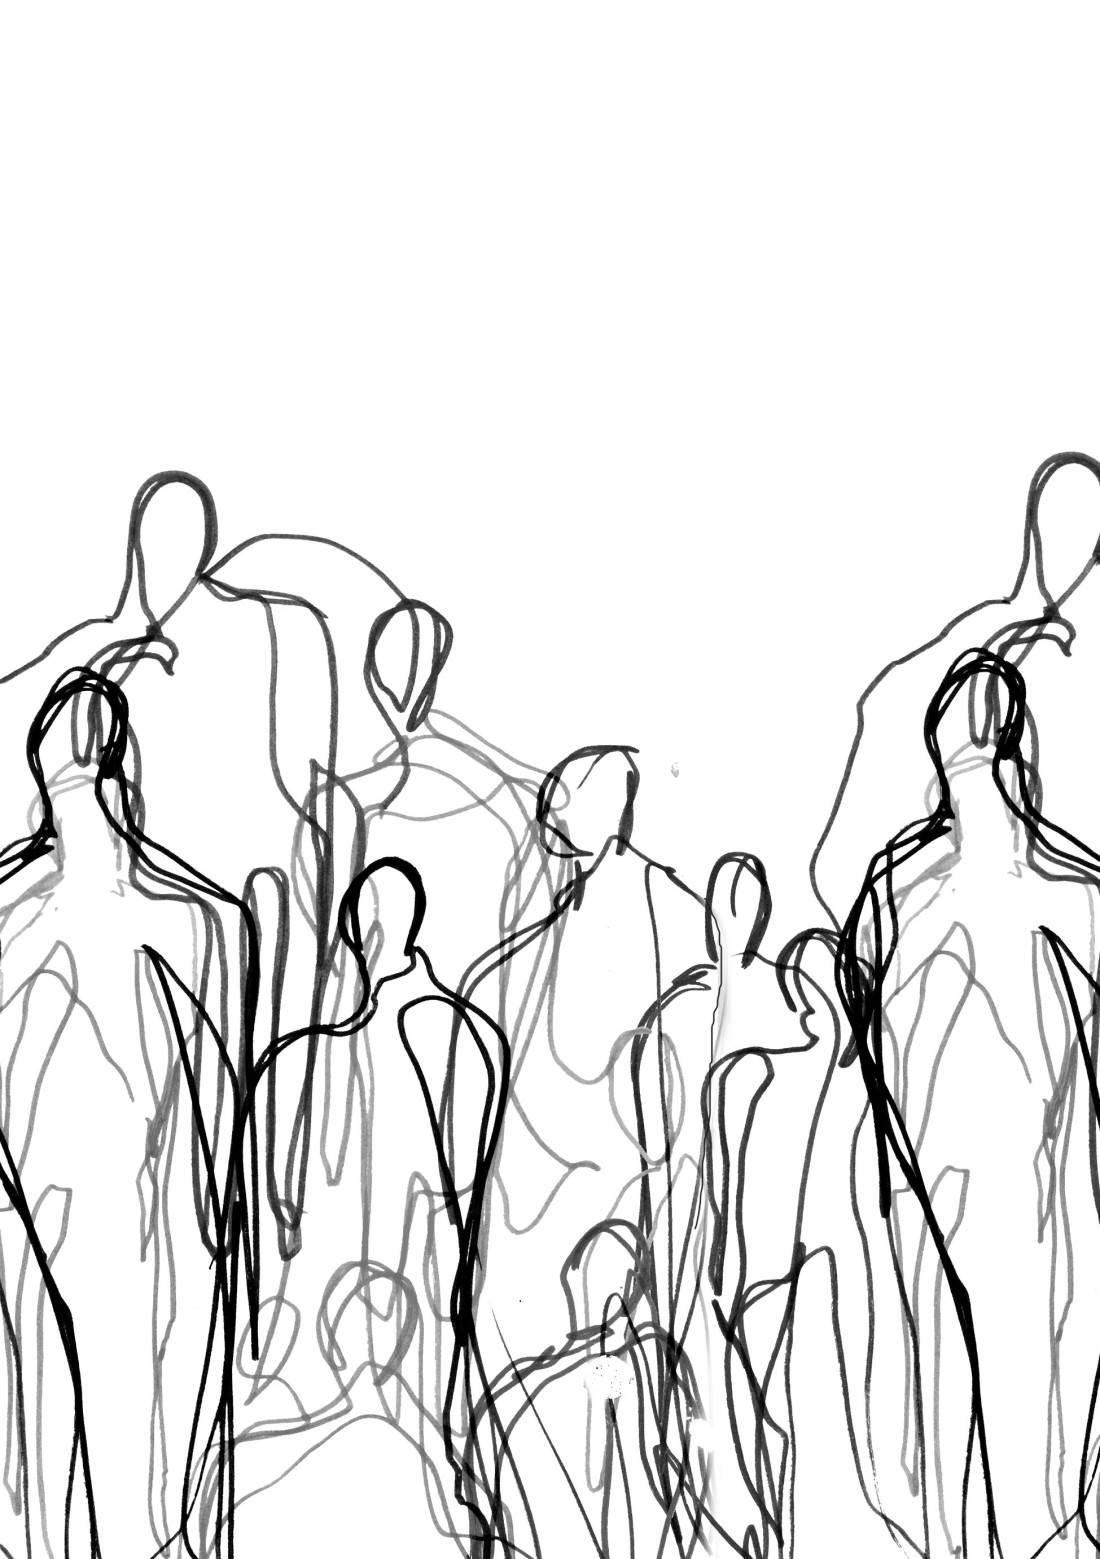 line-drawings-of-peoplea2